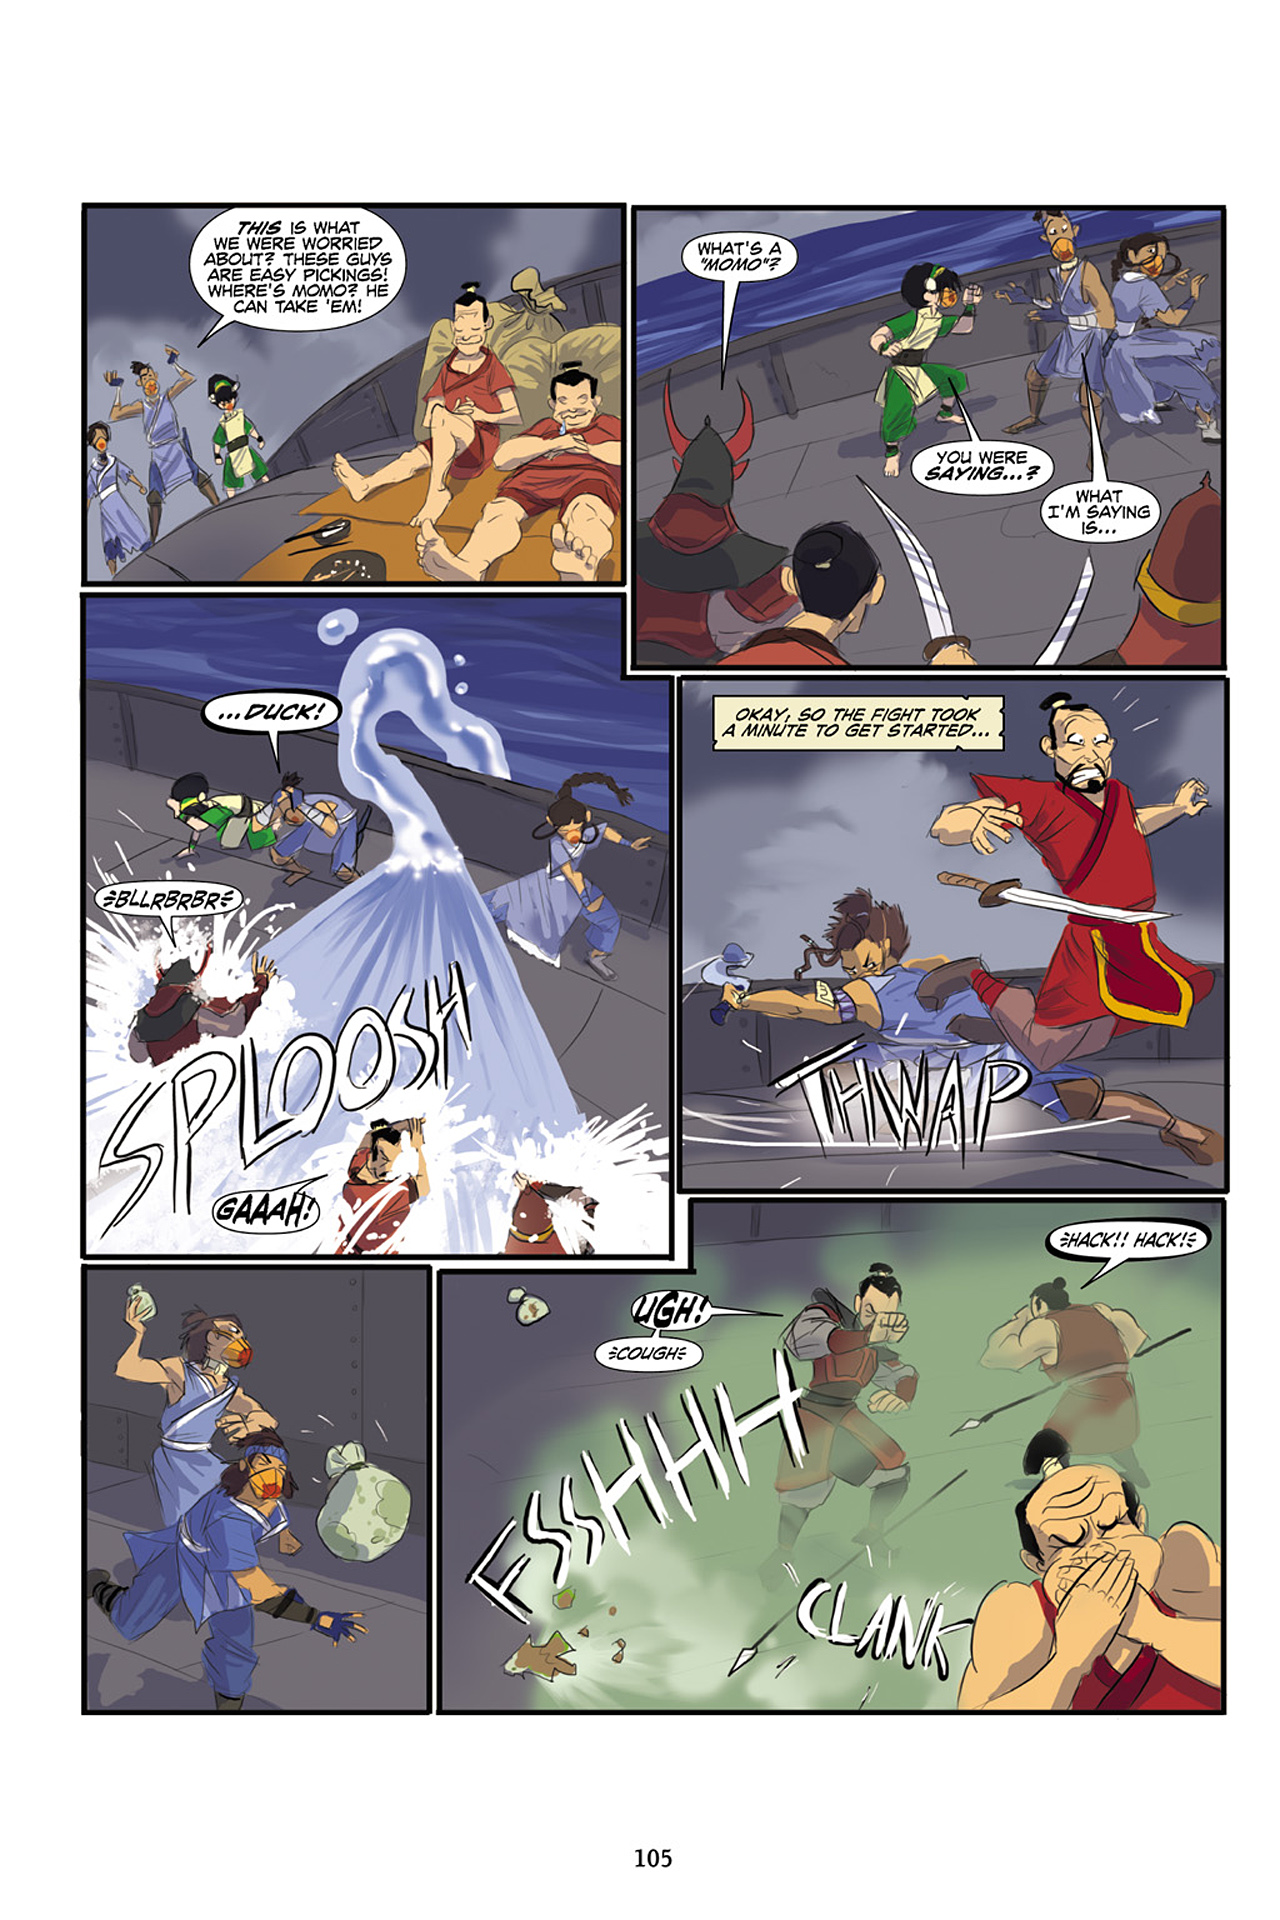 Nickelodeon Avatar: The Last Airbender - The Lost Adventures chap full pic 106